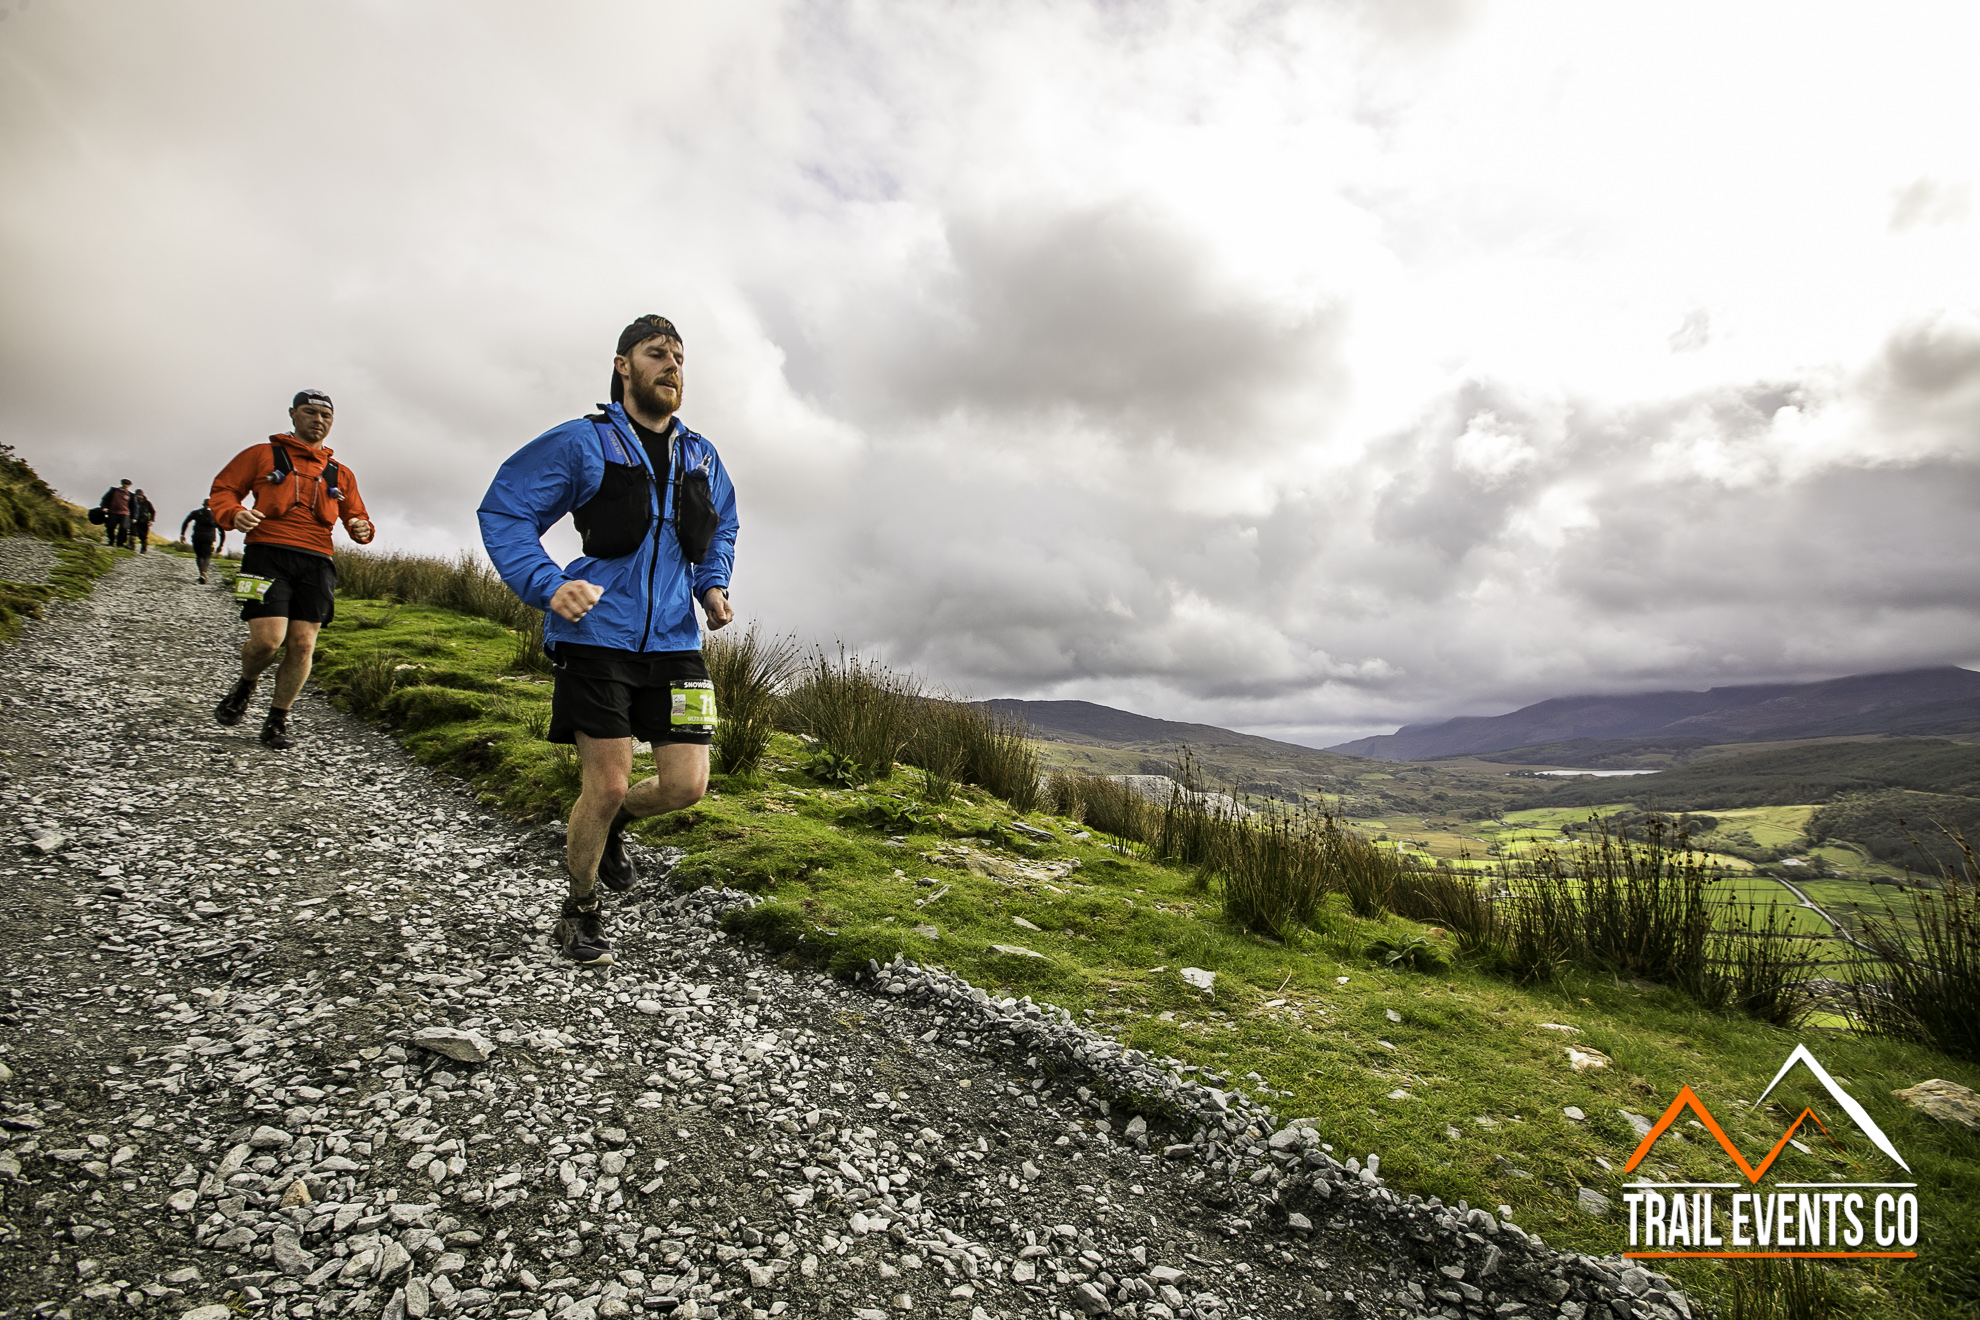 Snowdonia Trail Running Challenge – The Spring Crossing – April 2022 - Trail Events Co